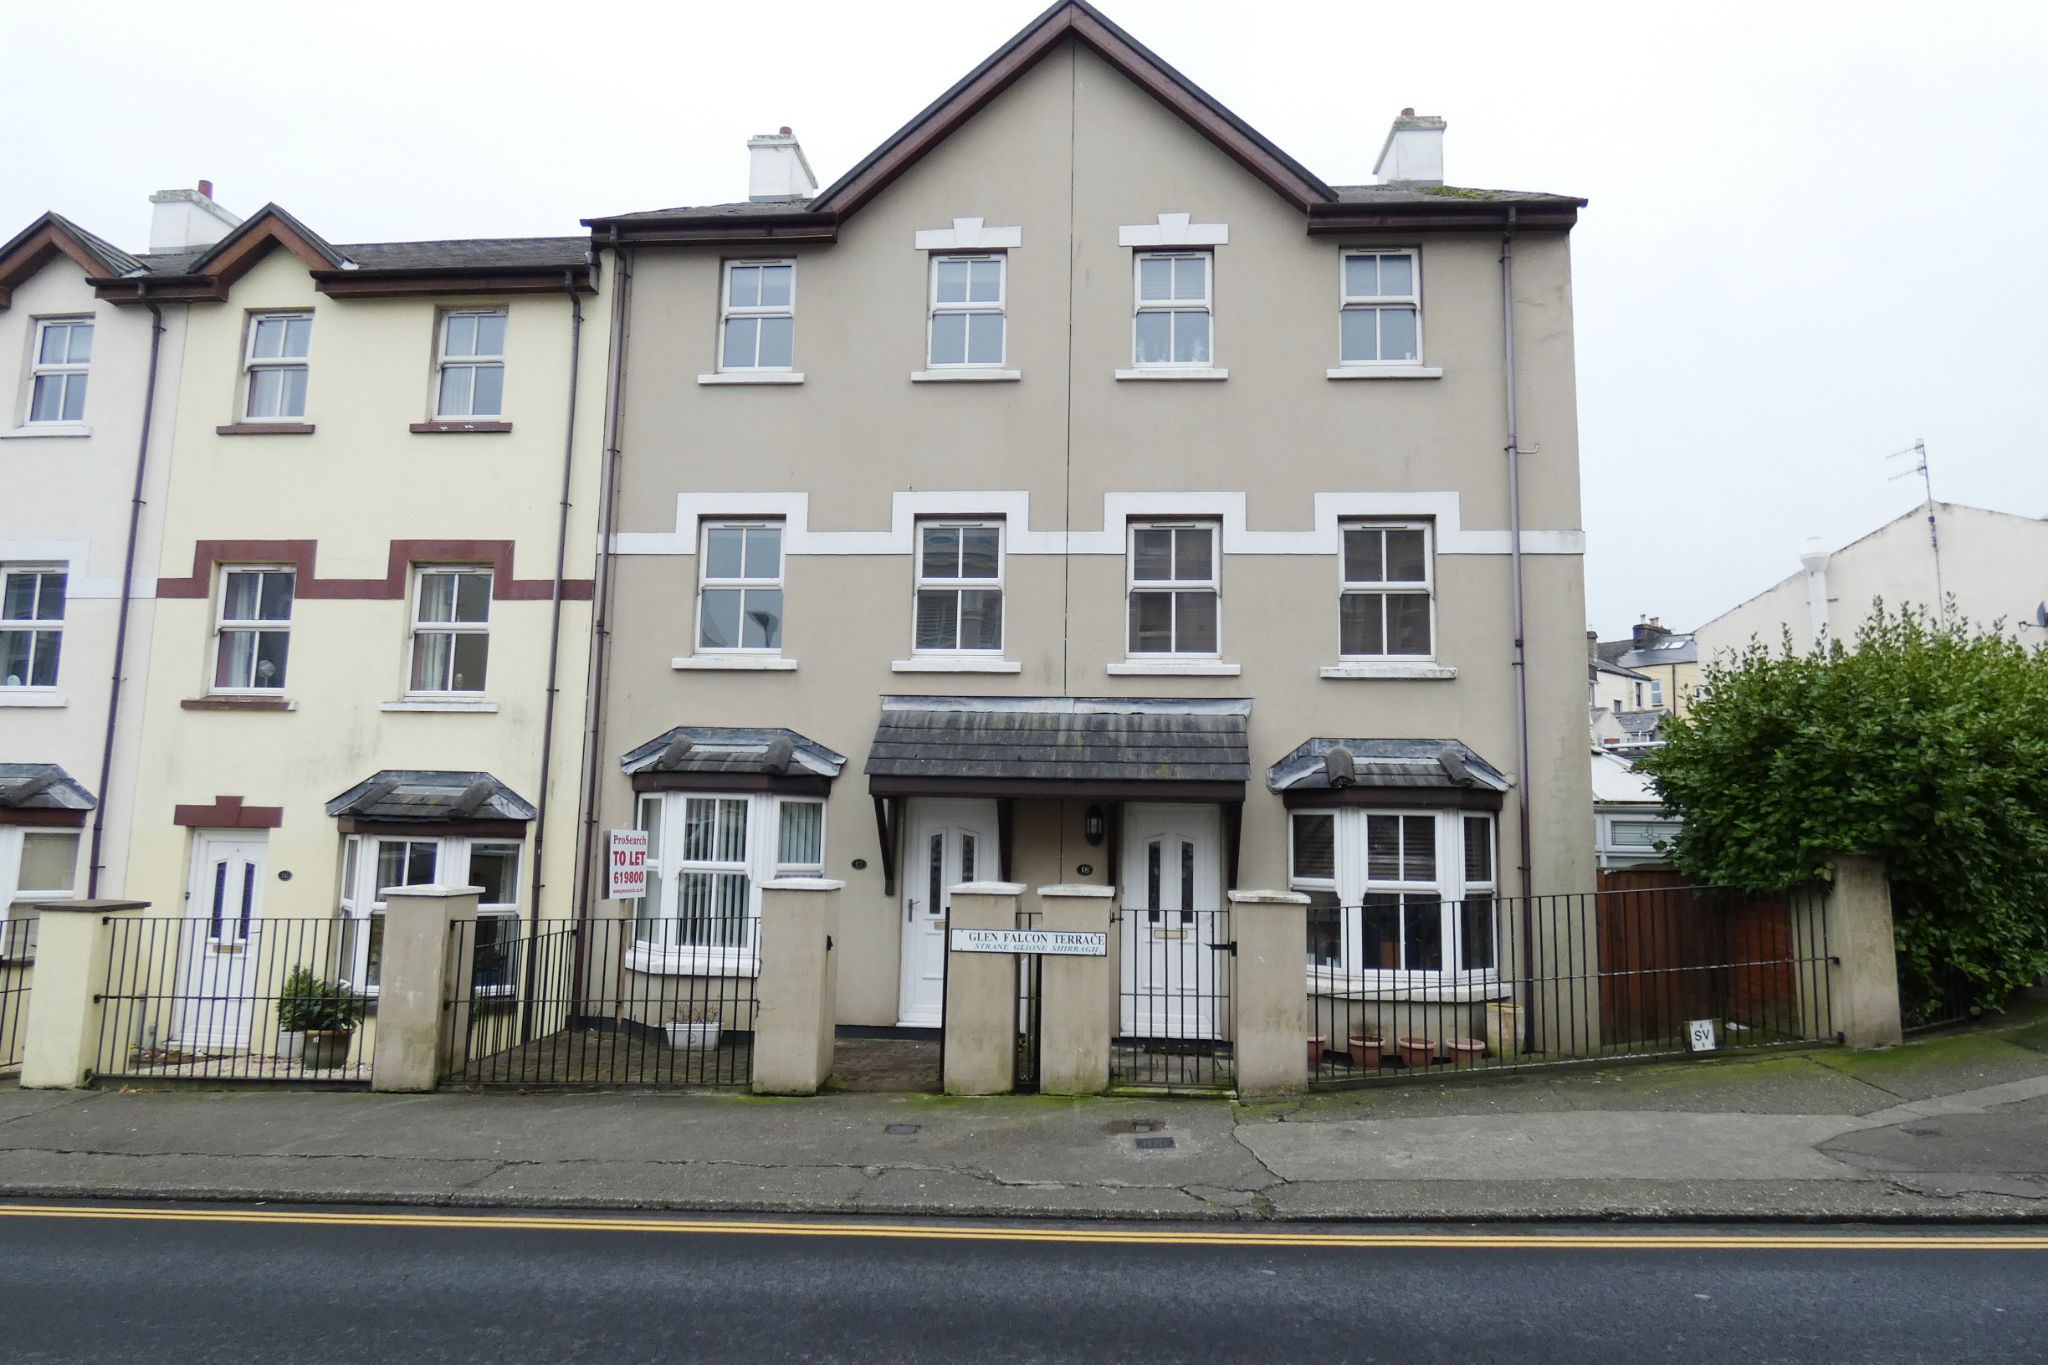 4 bedroom mid terraced house Let Agreed in Douglas - Photograph 1